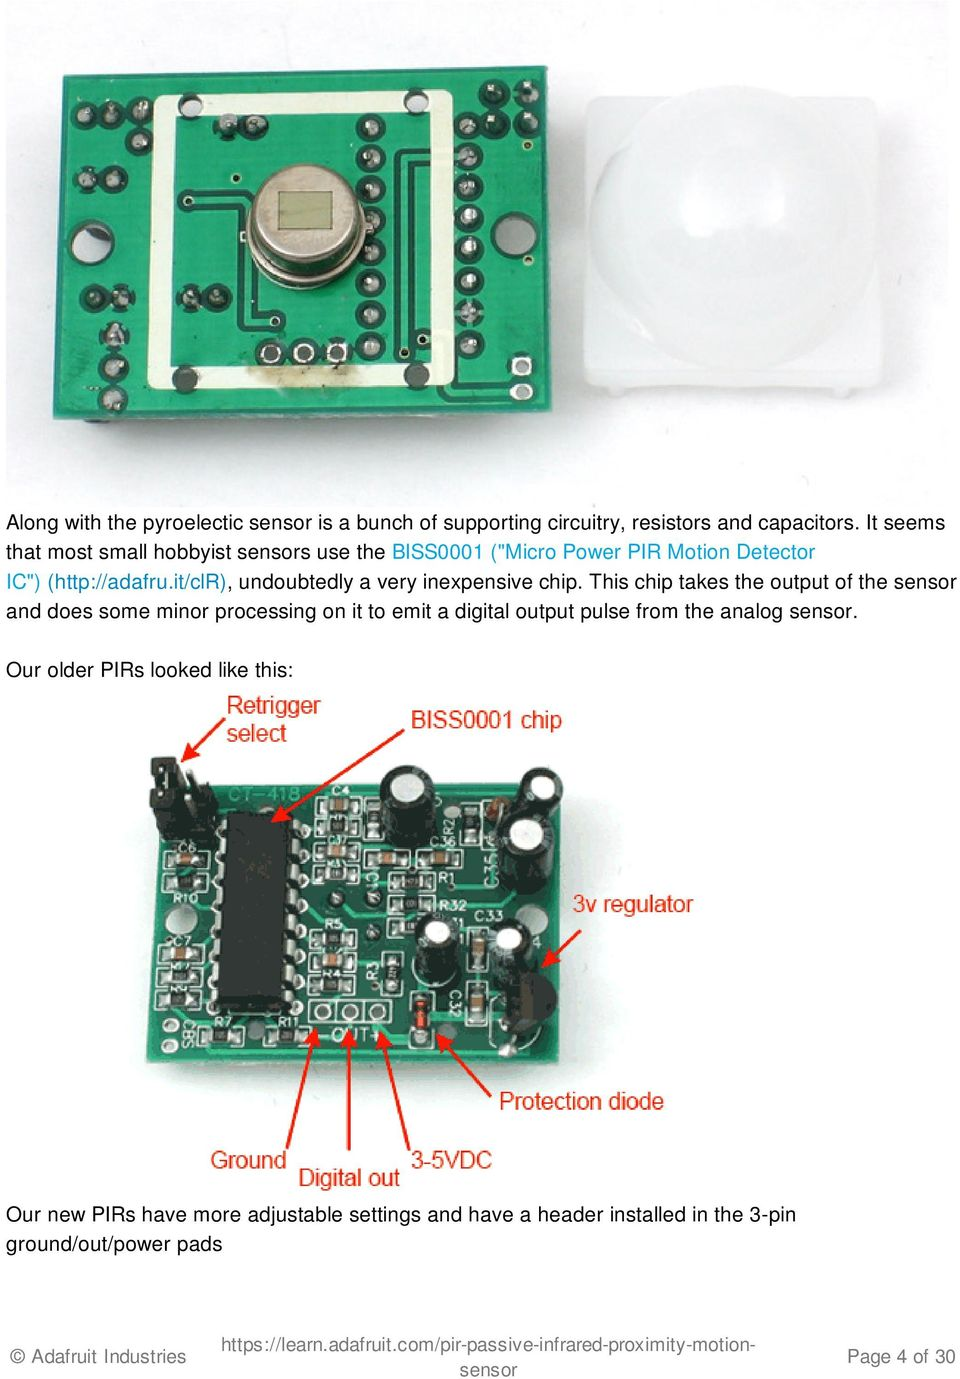 Pir Motion Sensor Created By Lady Ada Last Updated On 3258 Pm Sensors Circuit Using Integrated Pyroelectric It Clr Undoubtedly A Very Inexpensive Chip